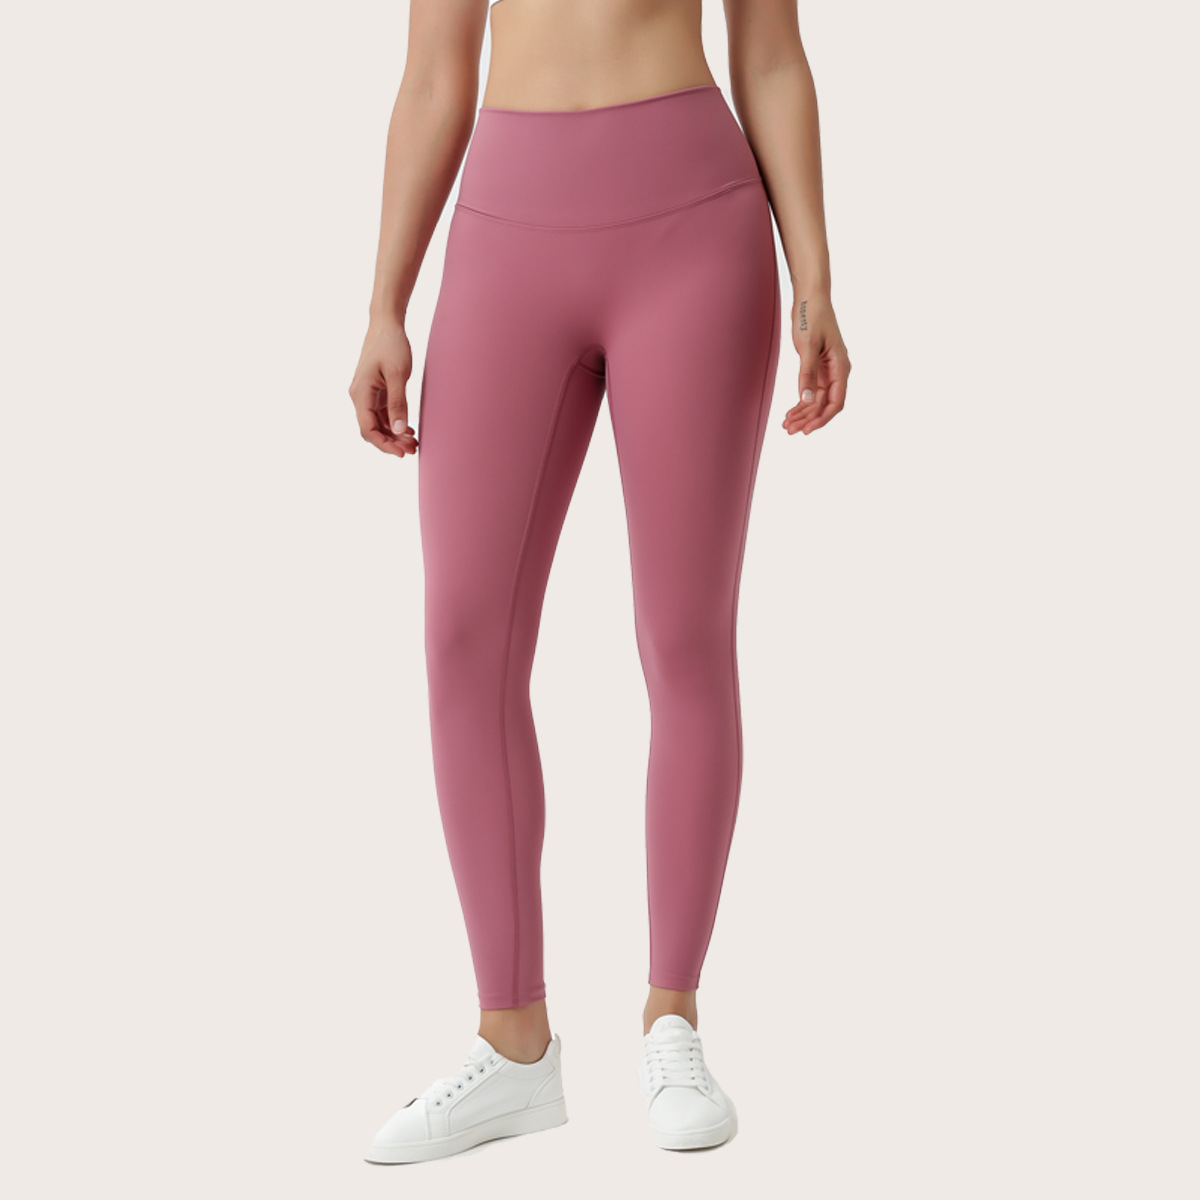 Lululemon Yoga high waist, hip lift, nude feeling, no embarrassment line, tight and quick drying, 9-point pants, no trace fitness suit